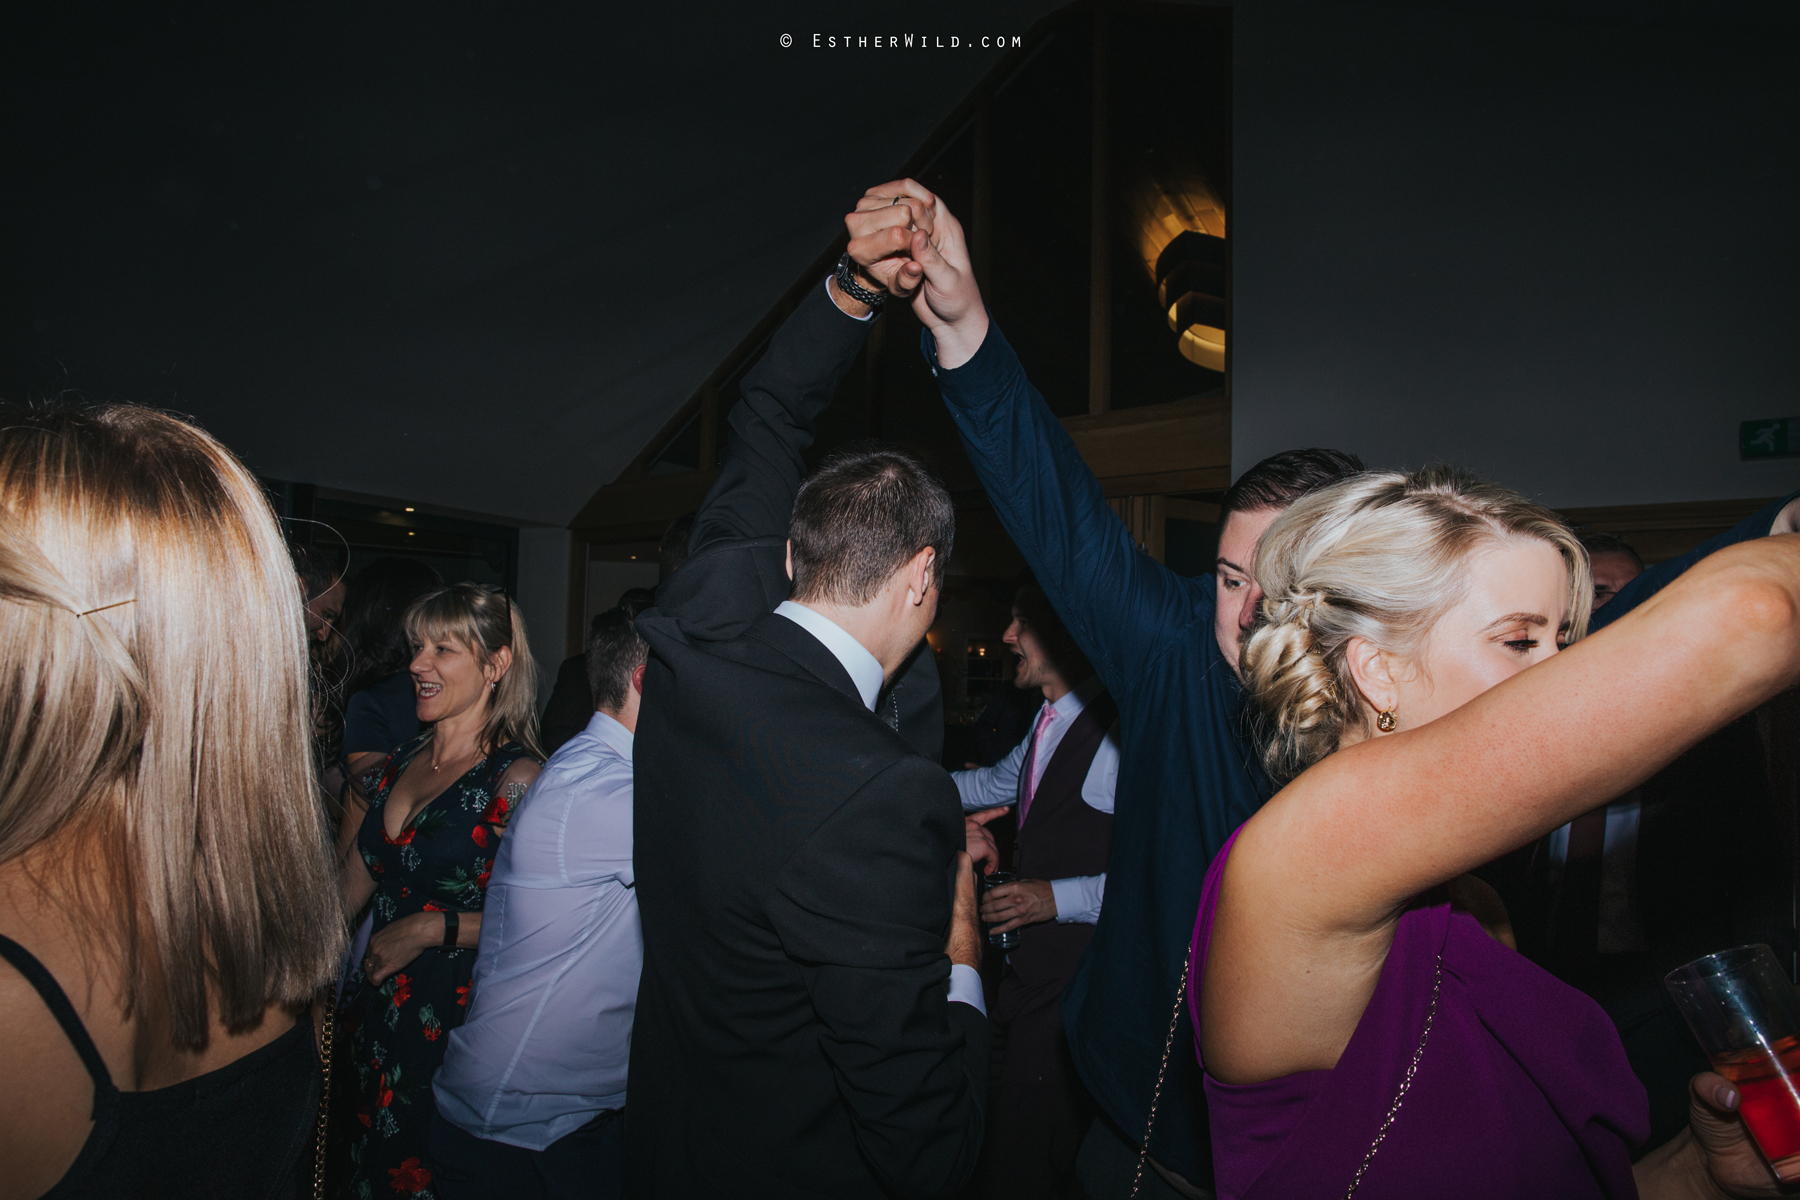 The_BoatHouse_Wedding_Venue_Ormesby_Norfolk_Broads_Boat_Wedding_Photography_Esther_Wild_Photographer_IMG_3698.jpg